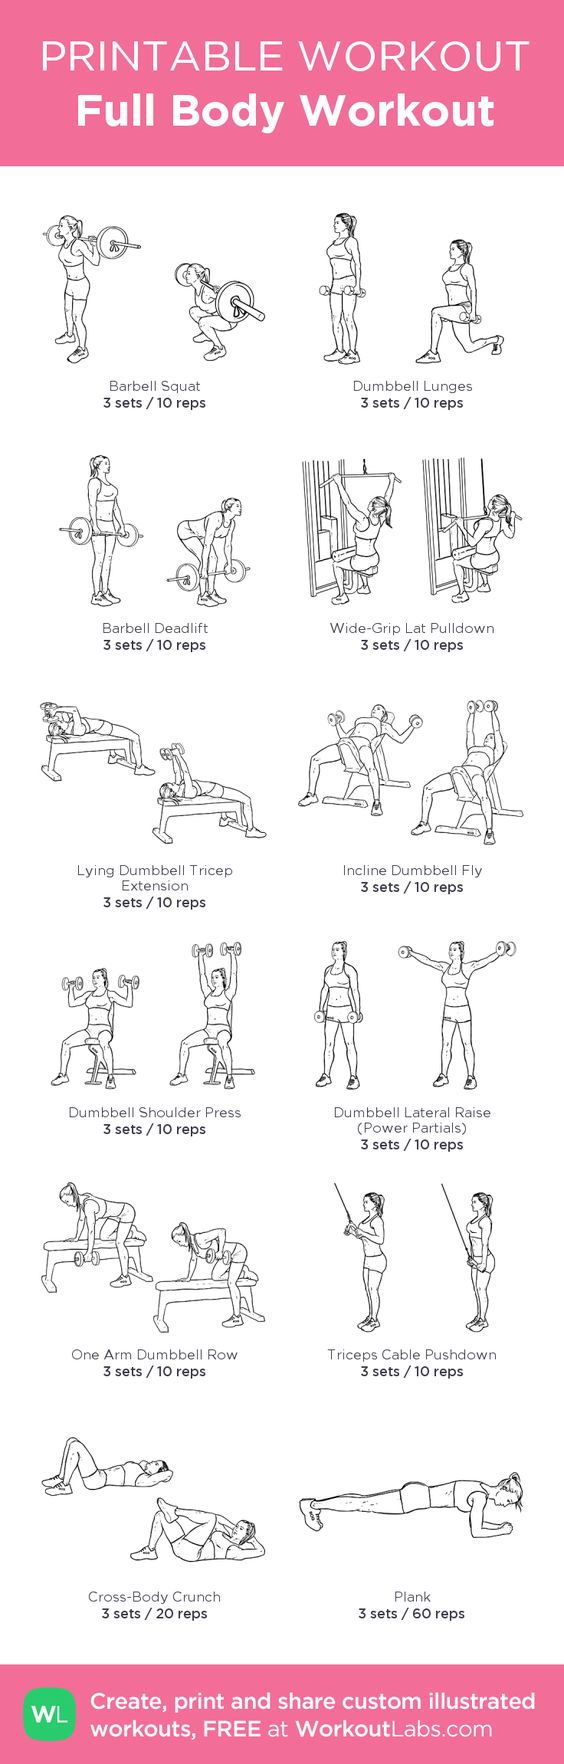 Full Body Workout:my custom printable workout by @WorkoutLabs #workoutlabs #customworkout